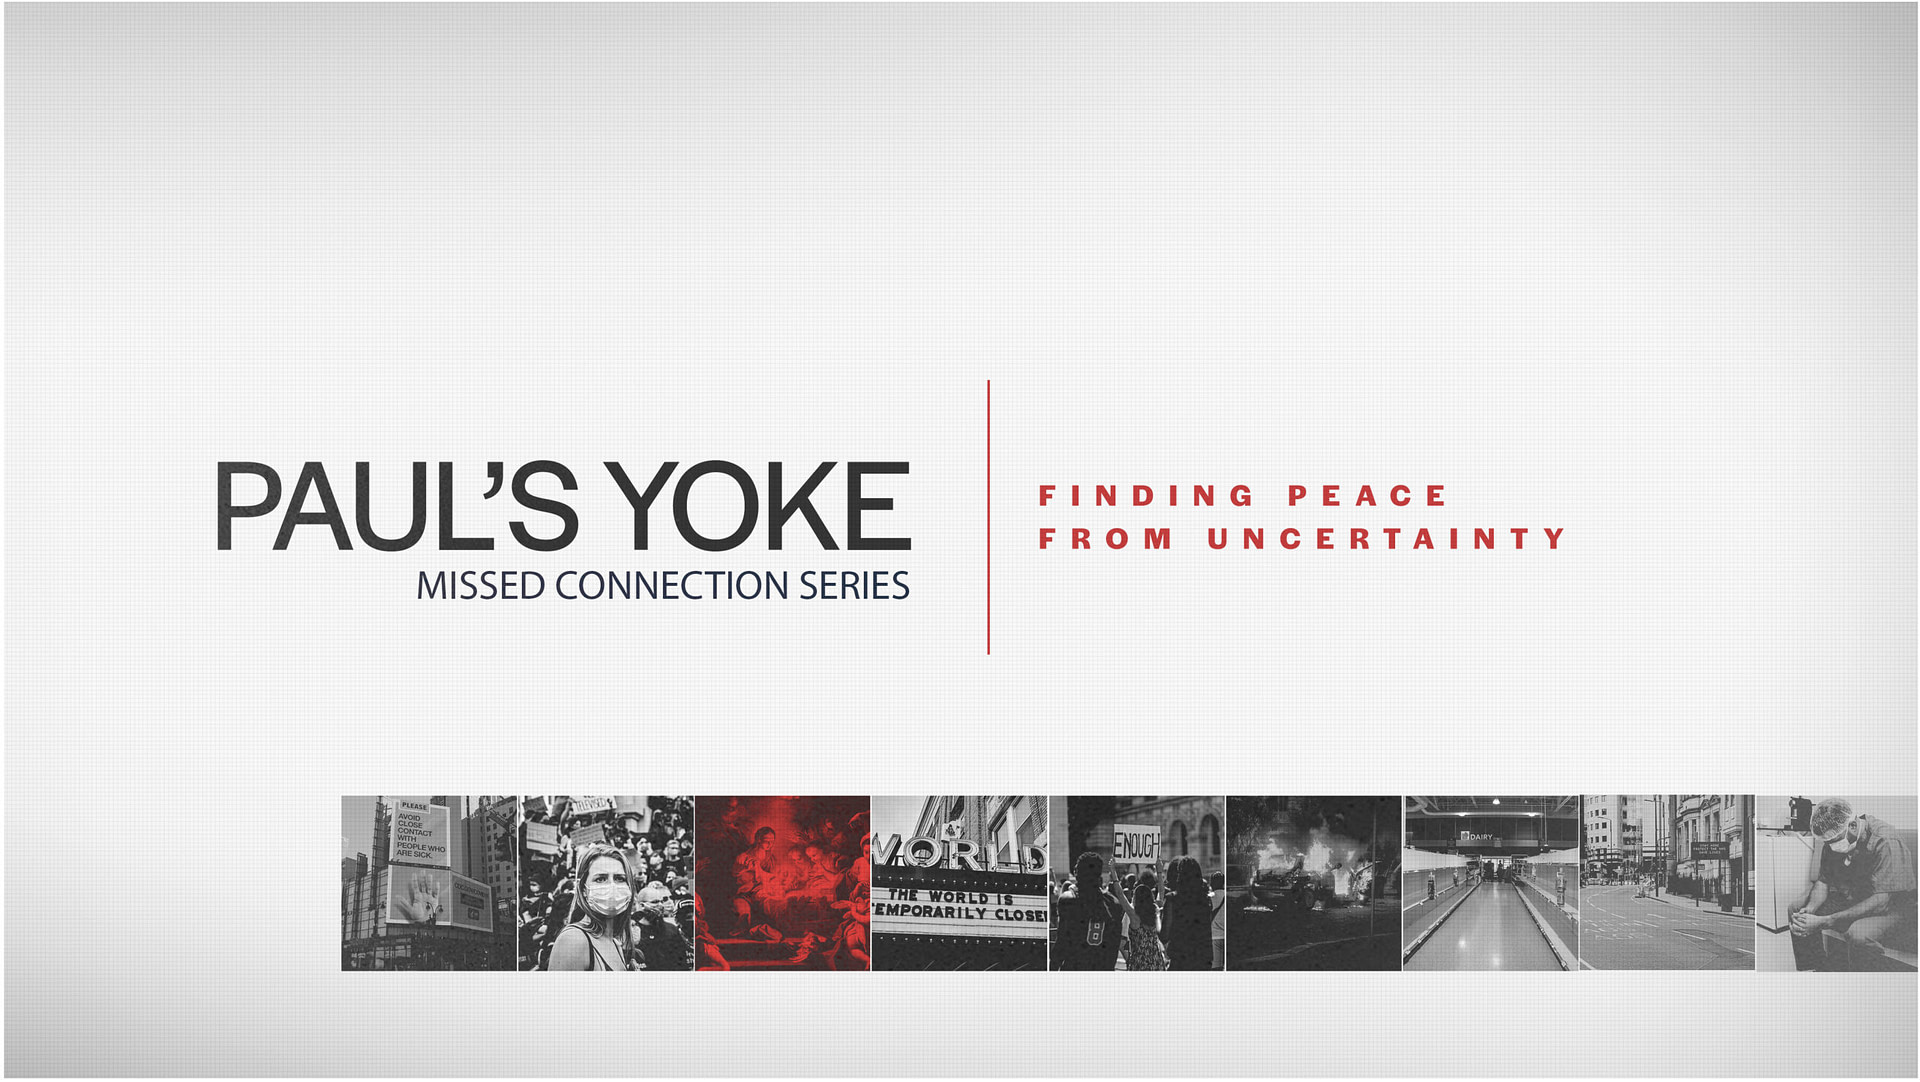 Paul's Yoke – Finding Peace From Uncertainty